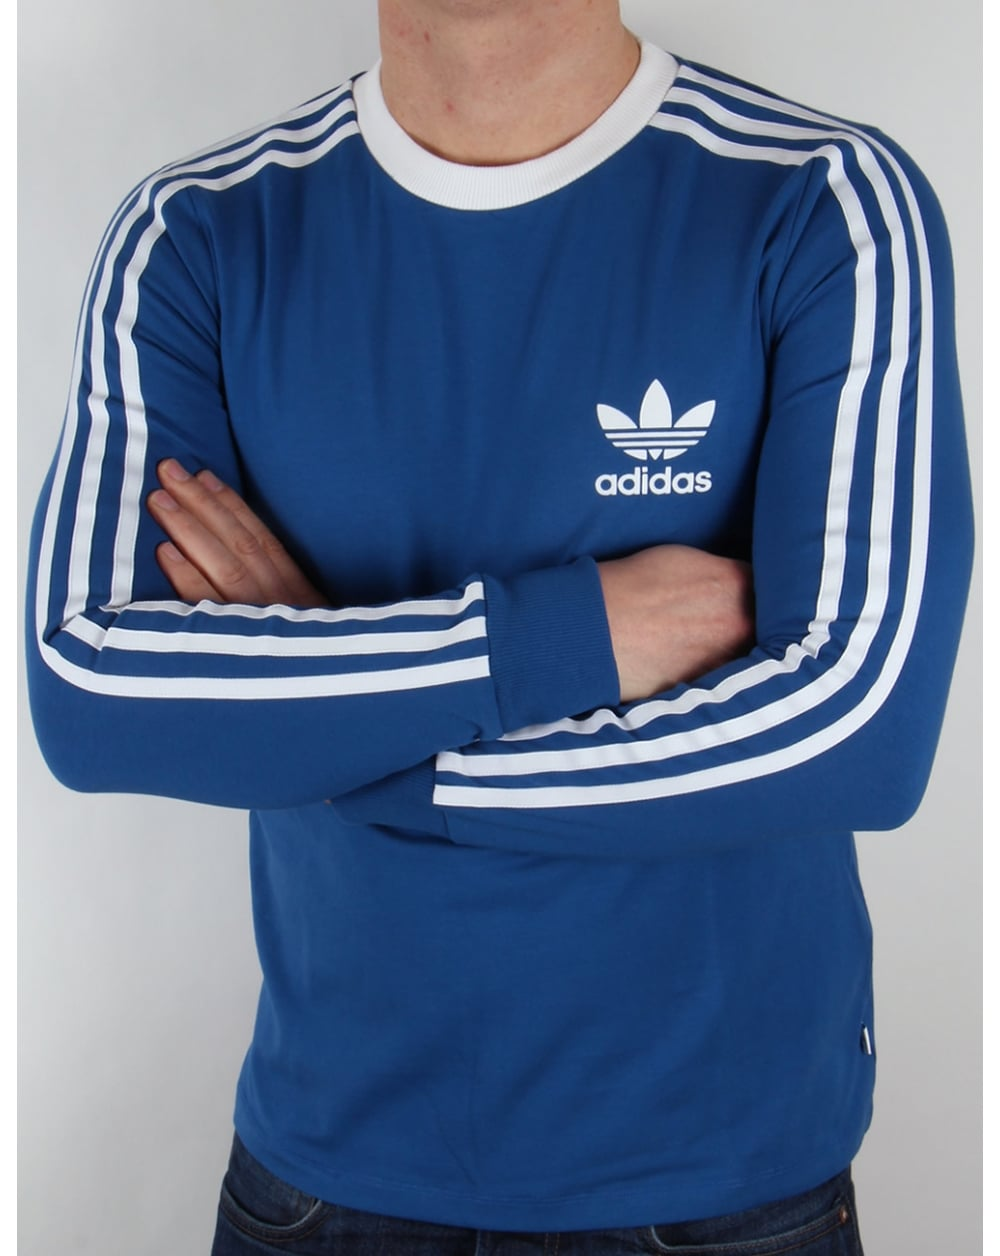 Adidas originals 3 stripes long sleeve t shirt eqt blue for Adidas long sleeve t shirt with trefoil logo